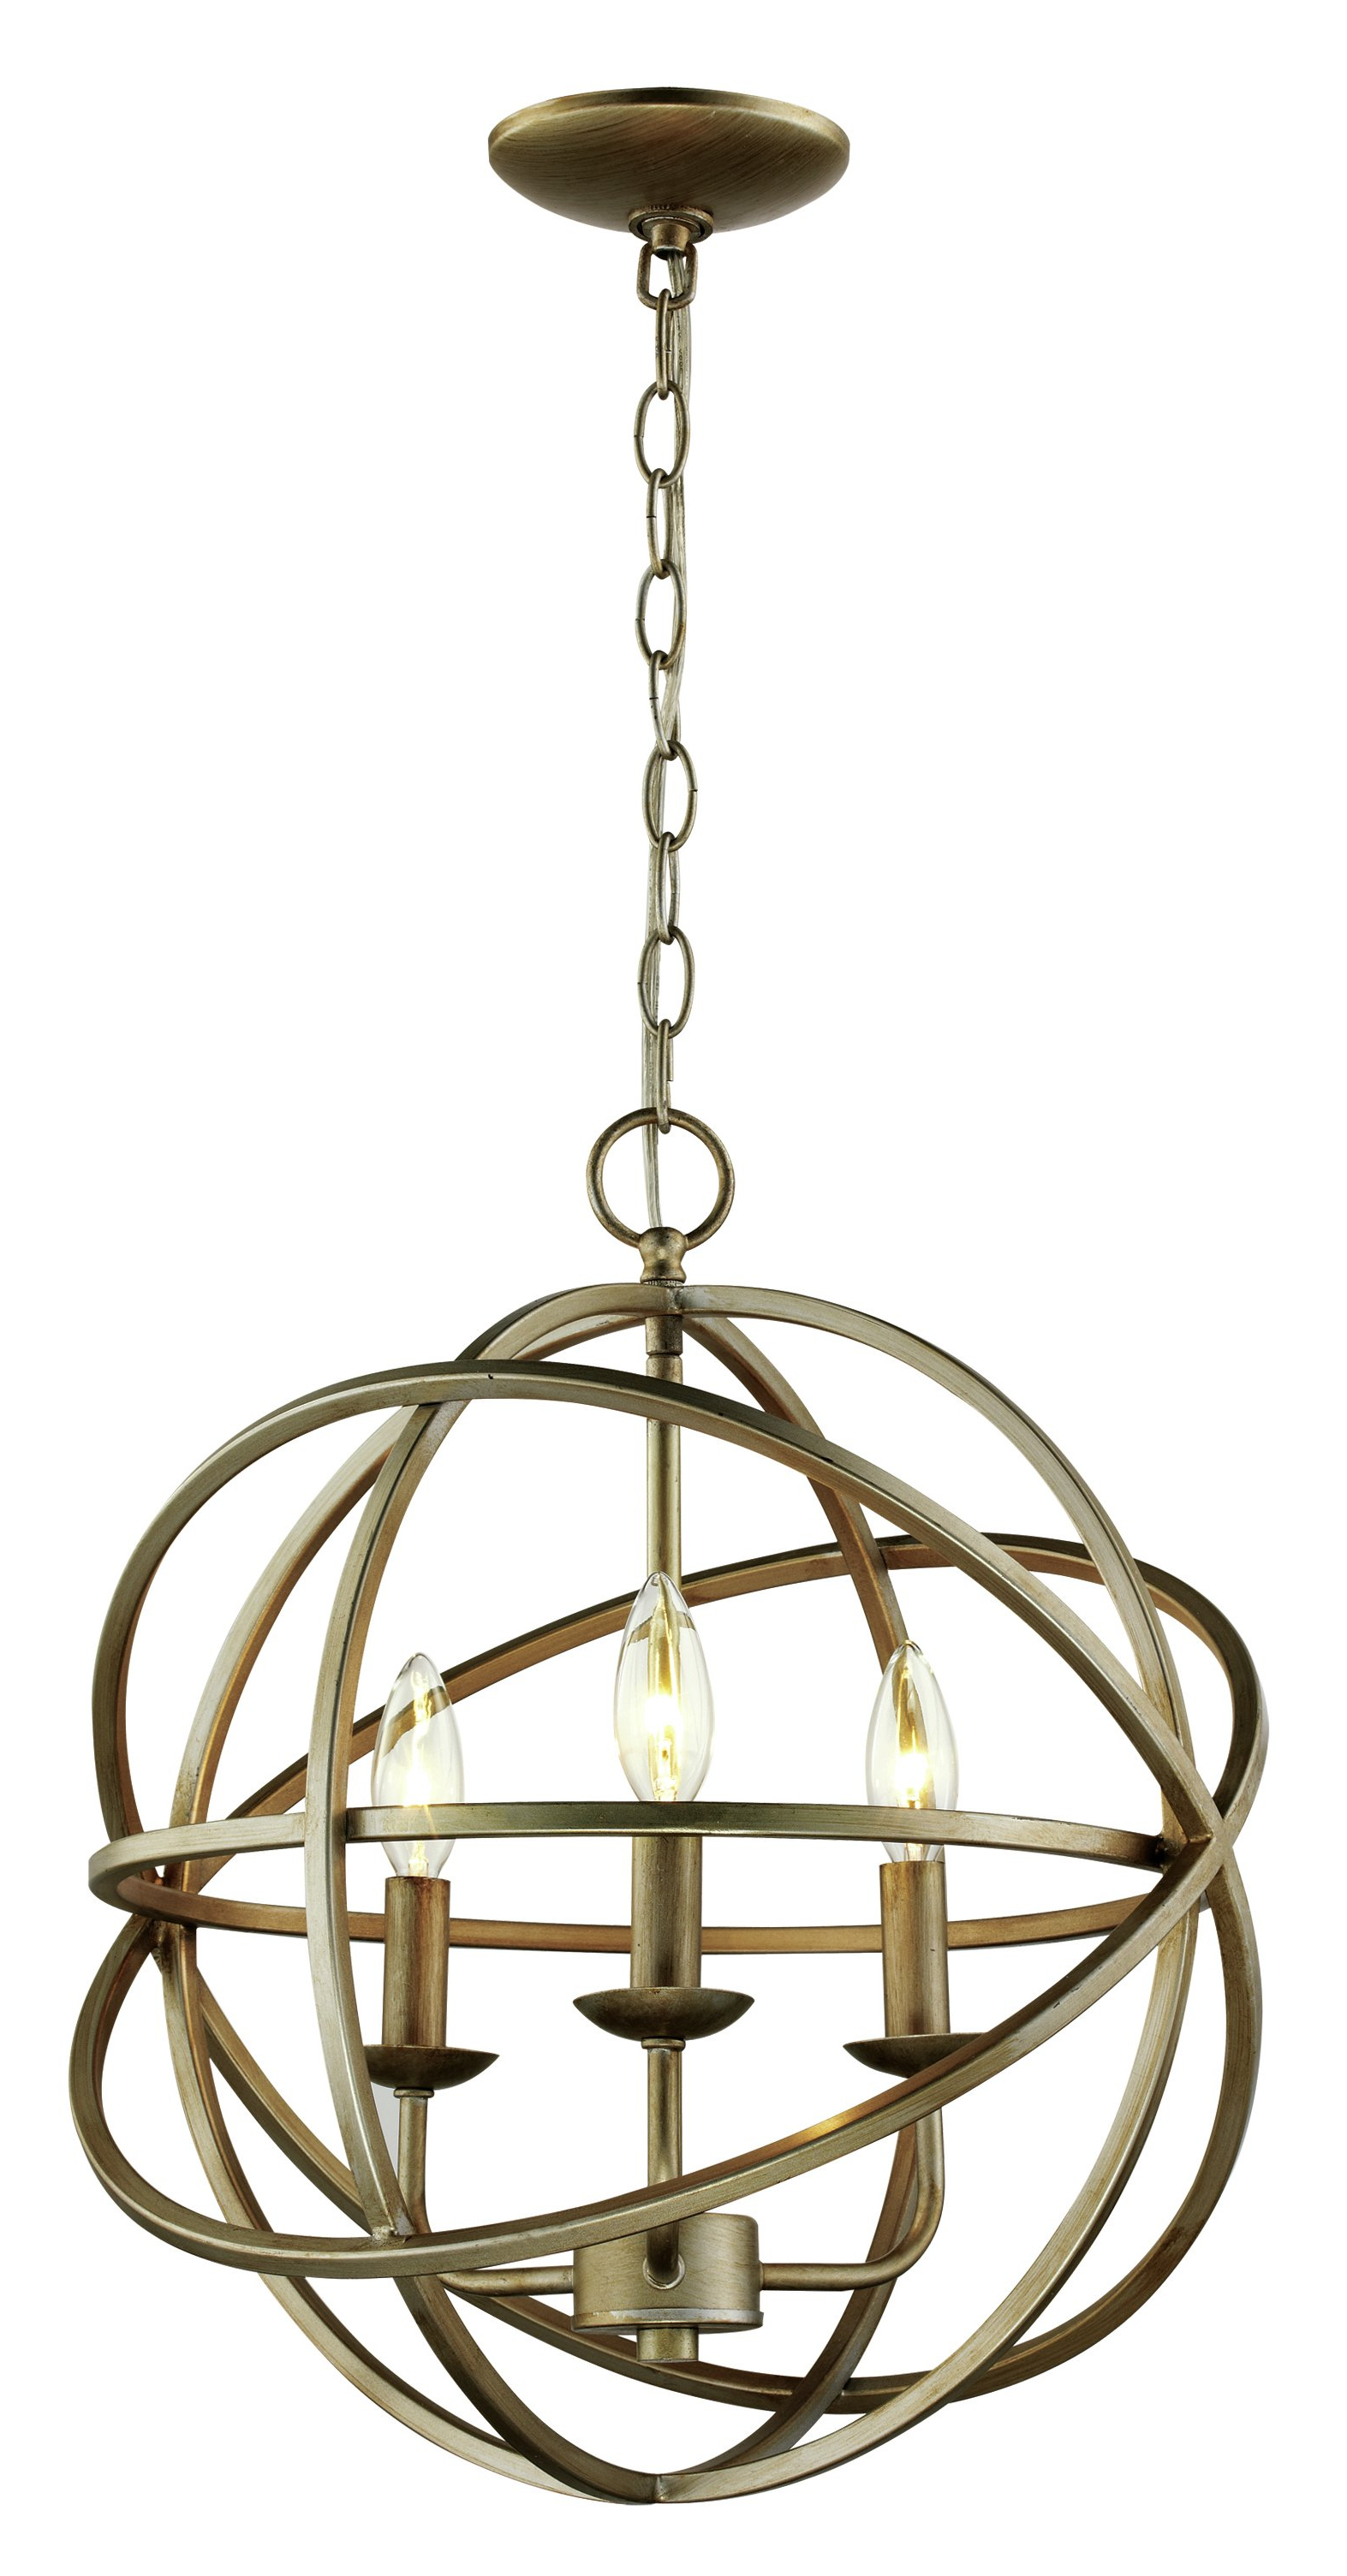 2019 Shipststour 3 Light Globe Chandeliers Regarding Baitz 3 Light Globe Chandelier (Gallery 5 of 20)